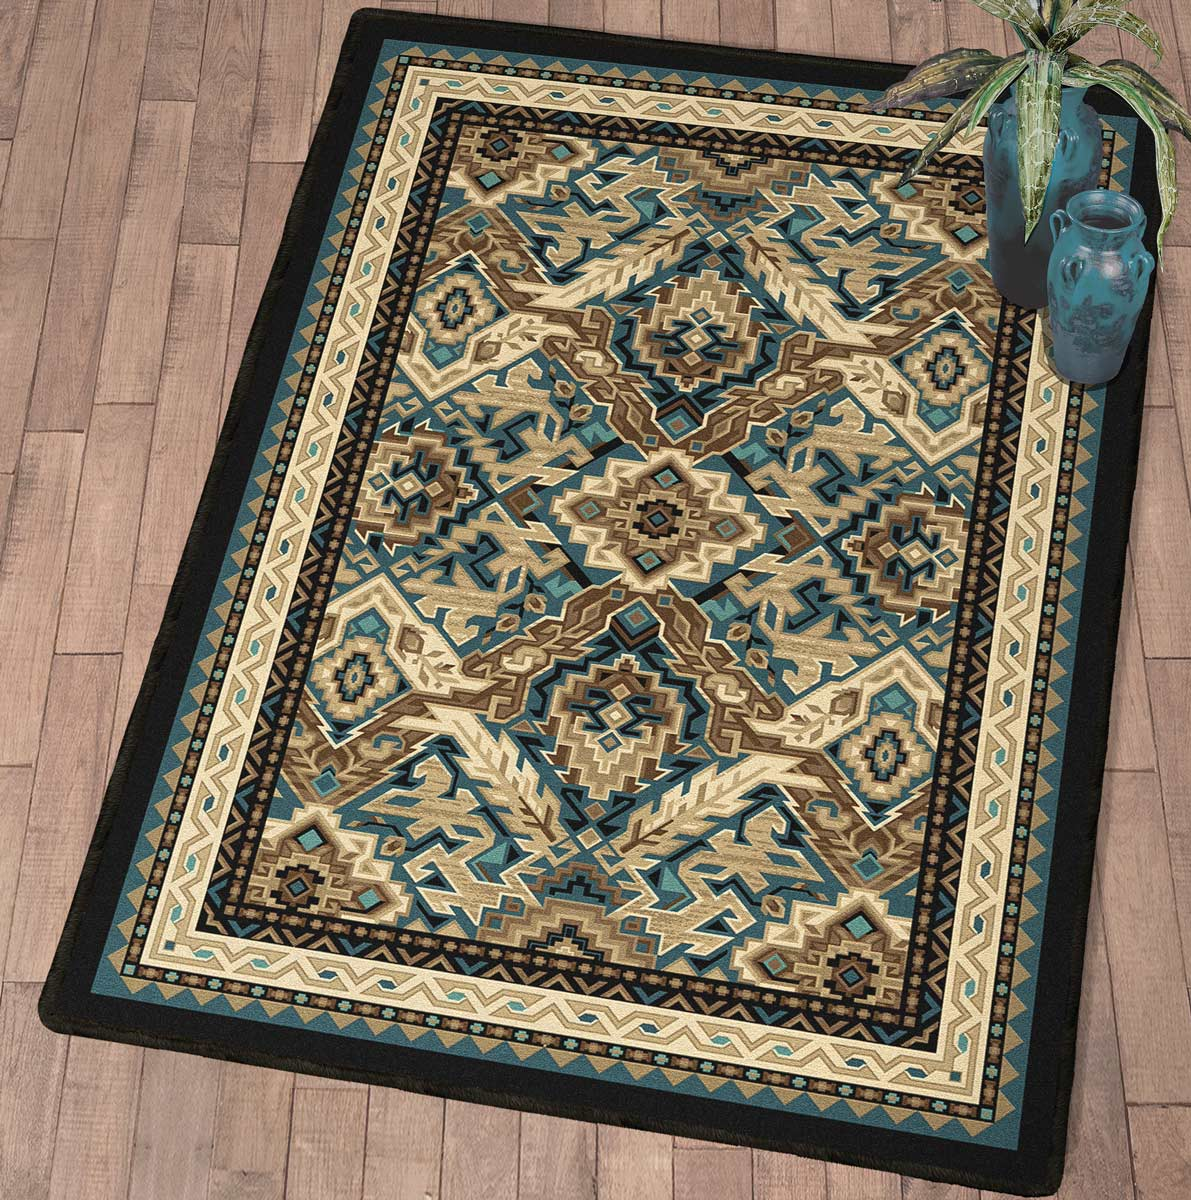 Horizon Mountain Rug - 3 x 4